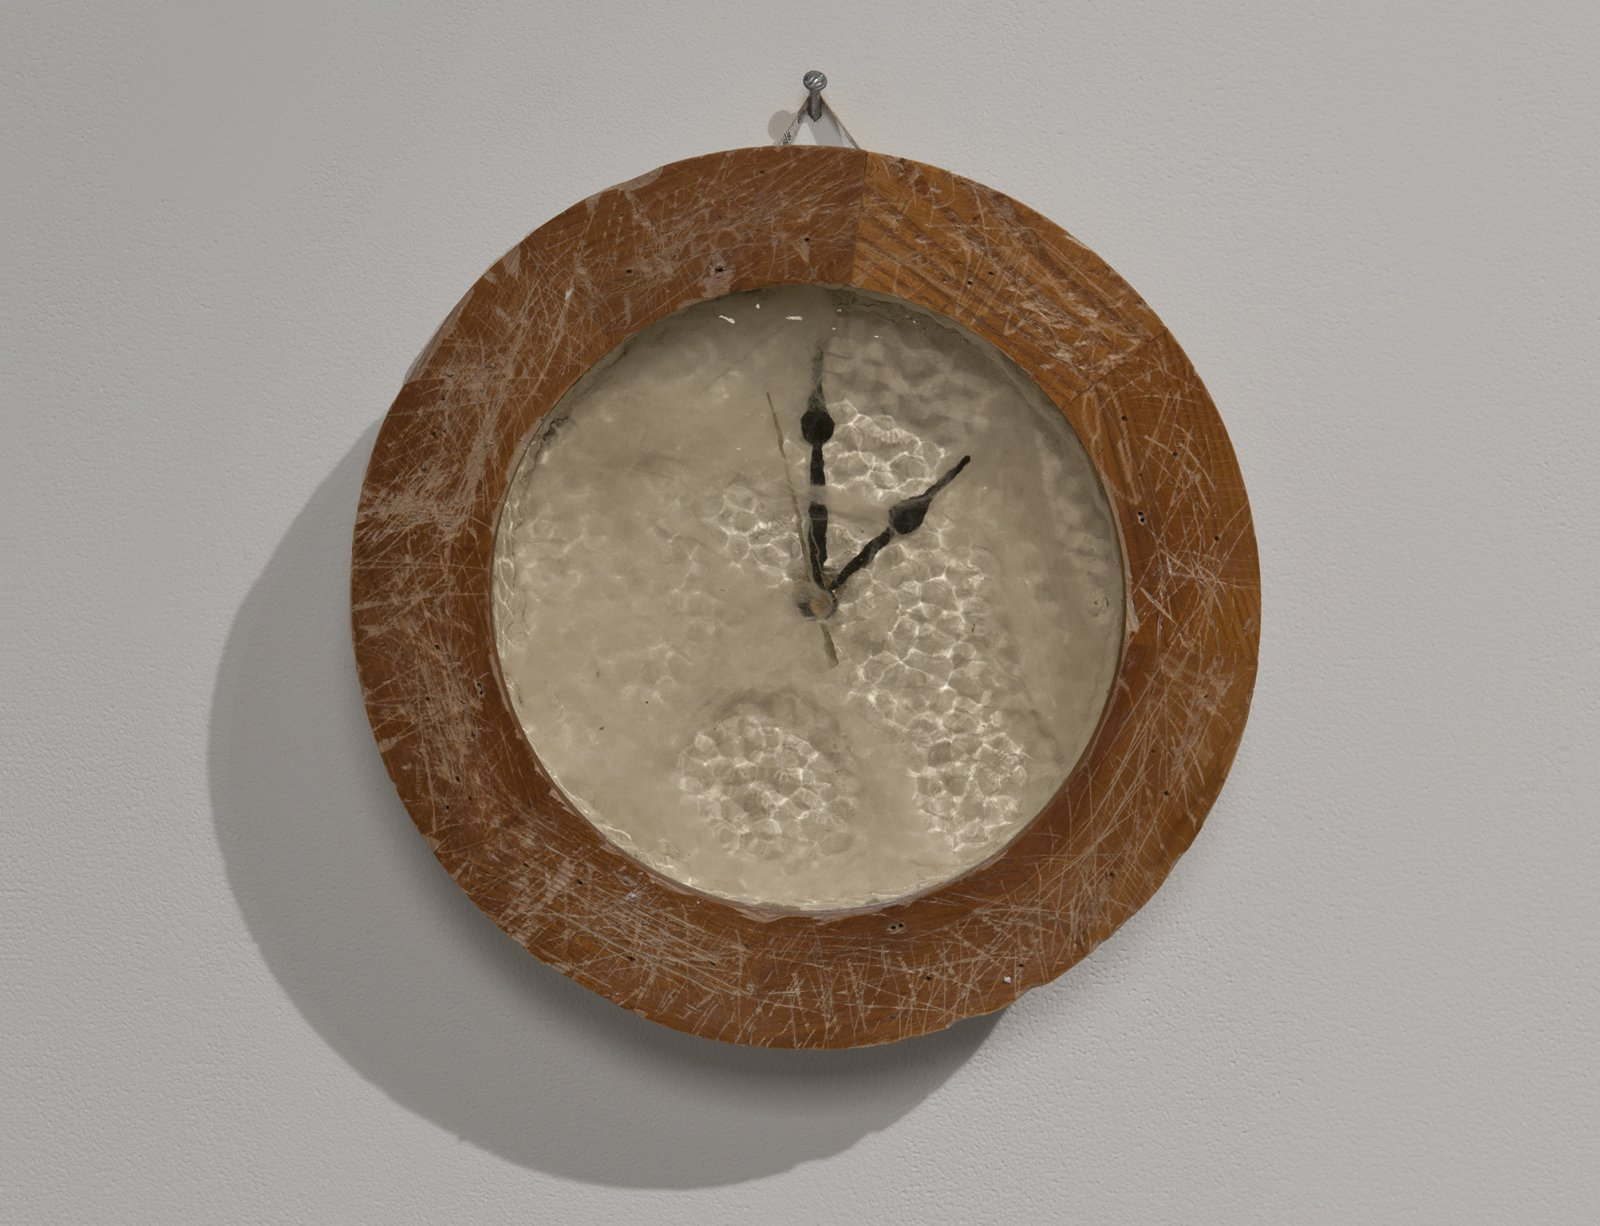 Julia Feyrer, Antiqued/Muffled (The Crypt), 2012, english muffle antique veil glass, wood, fake cobwebs, styrofoam, plaster, plastic clock hands, mothball, tape measure, quartz clock movement, 13 x 13 x 3 in. (32 x 32 x 8 cm) by Julia Feyrer